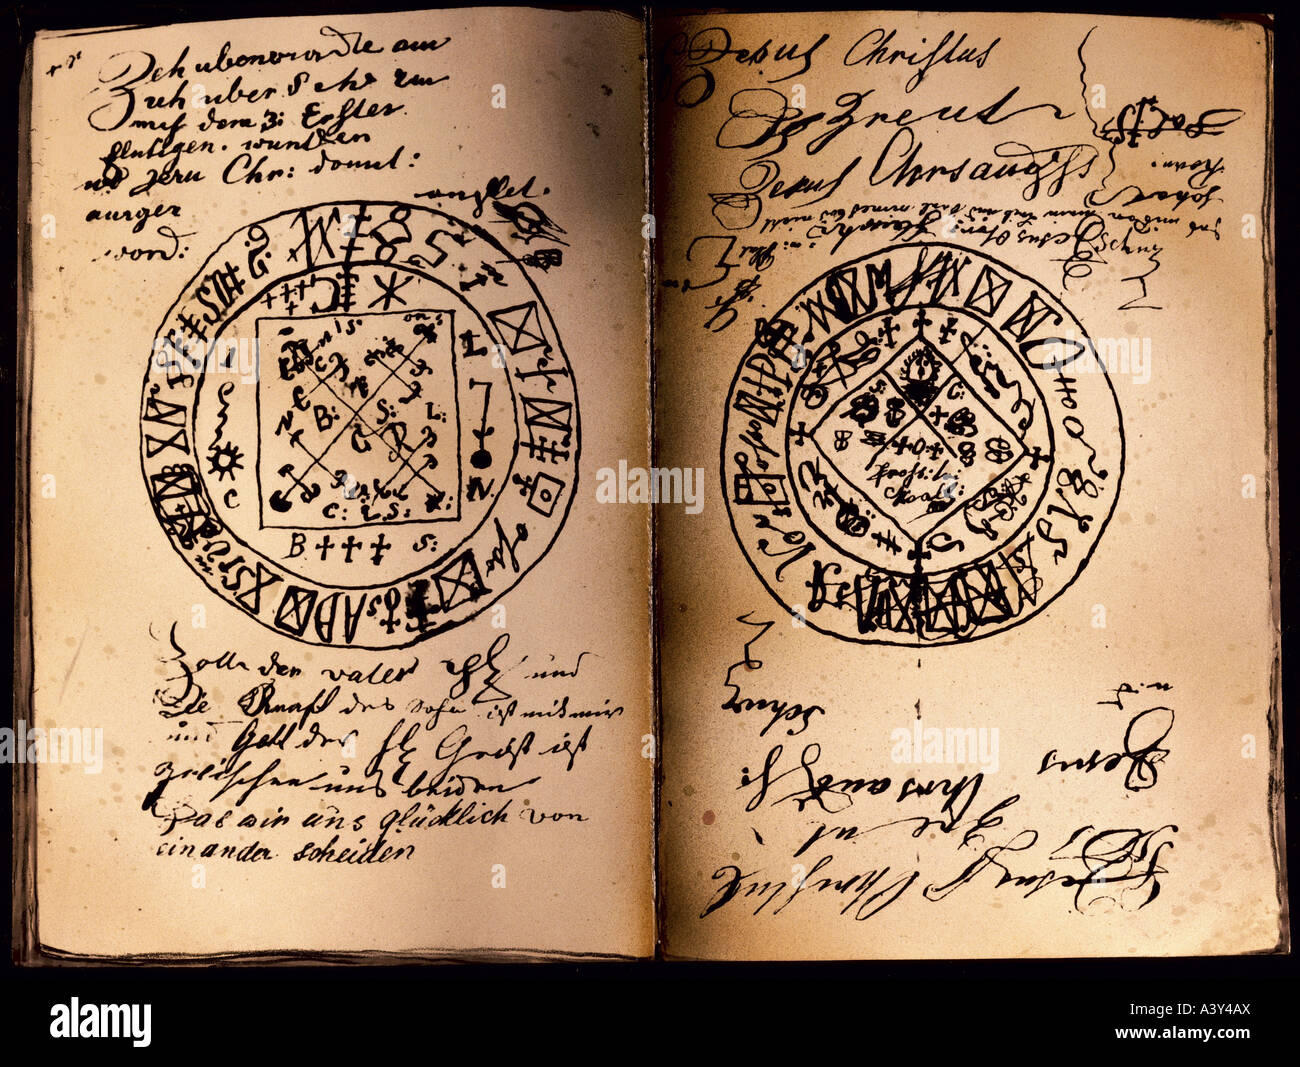 Superstition, Seal, Double Page Handwritten Grimoire, Southern Stock Photo: 10880257